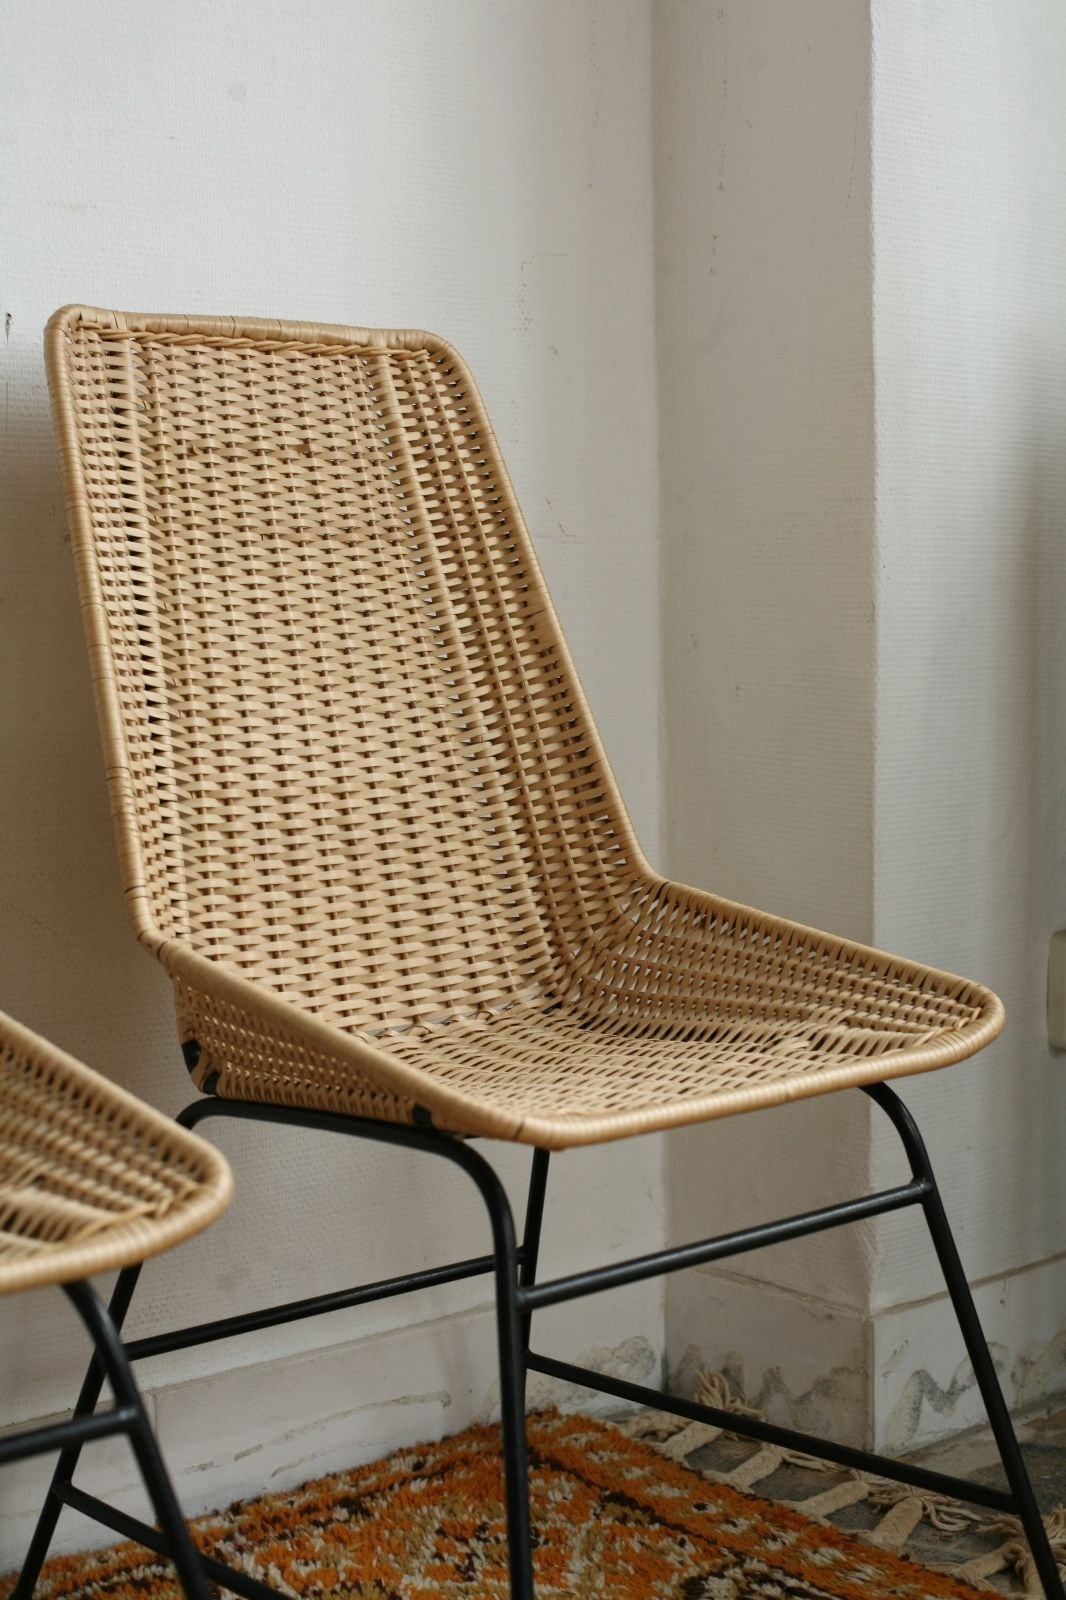 Korbstuhl Rattan True Vintage 1von2 Rattan Korb Stuhl 60er String Wicker Chair Made